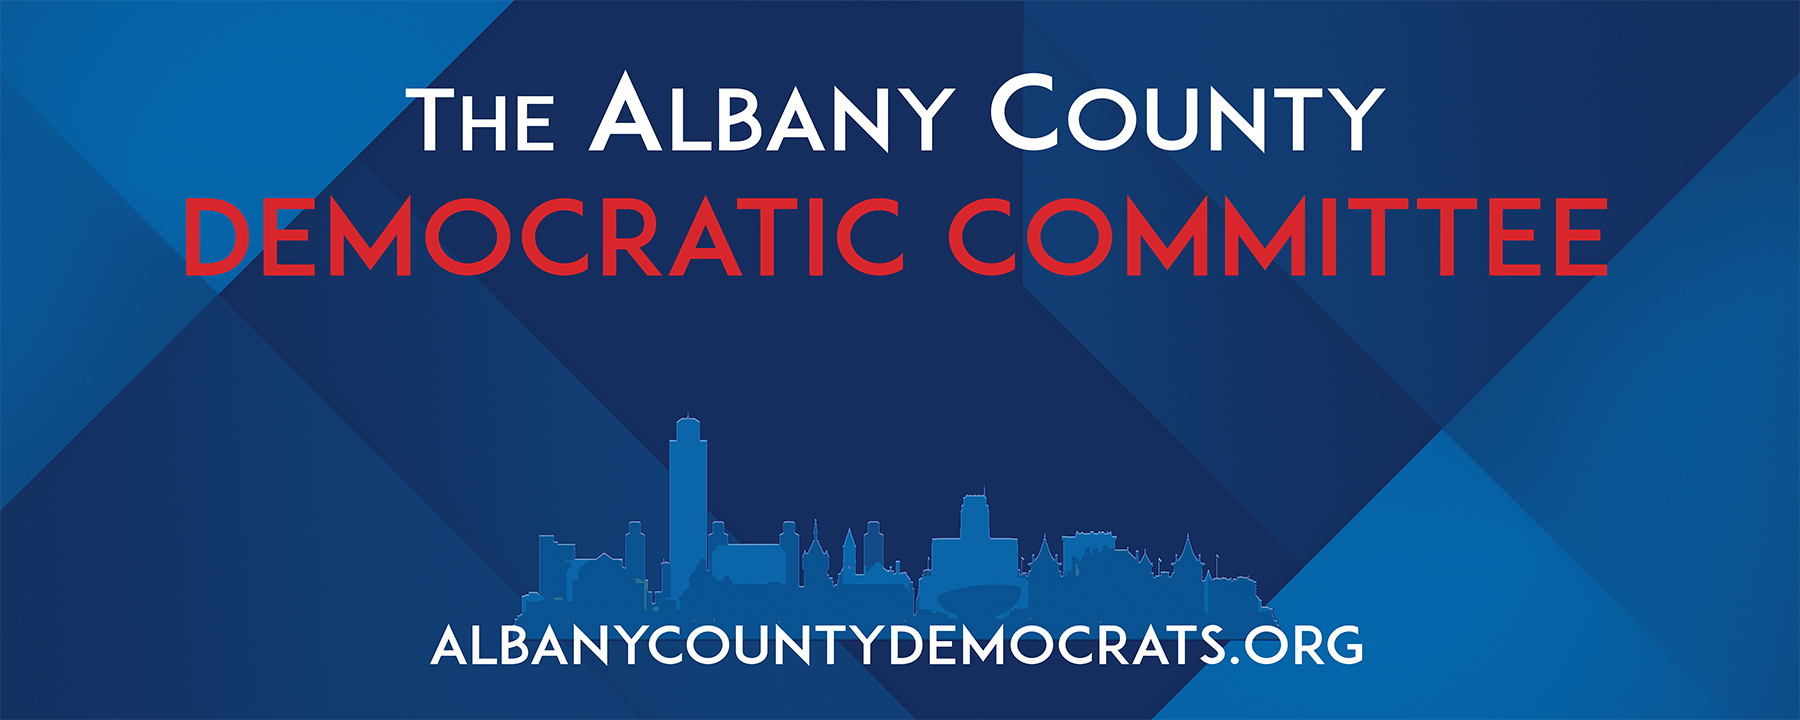 Albany County Democratic Committee (NY)